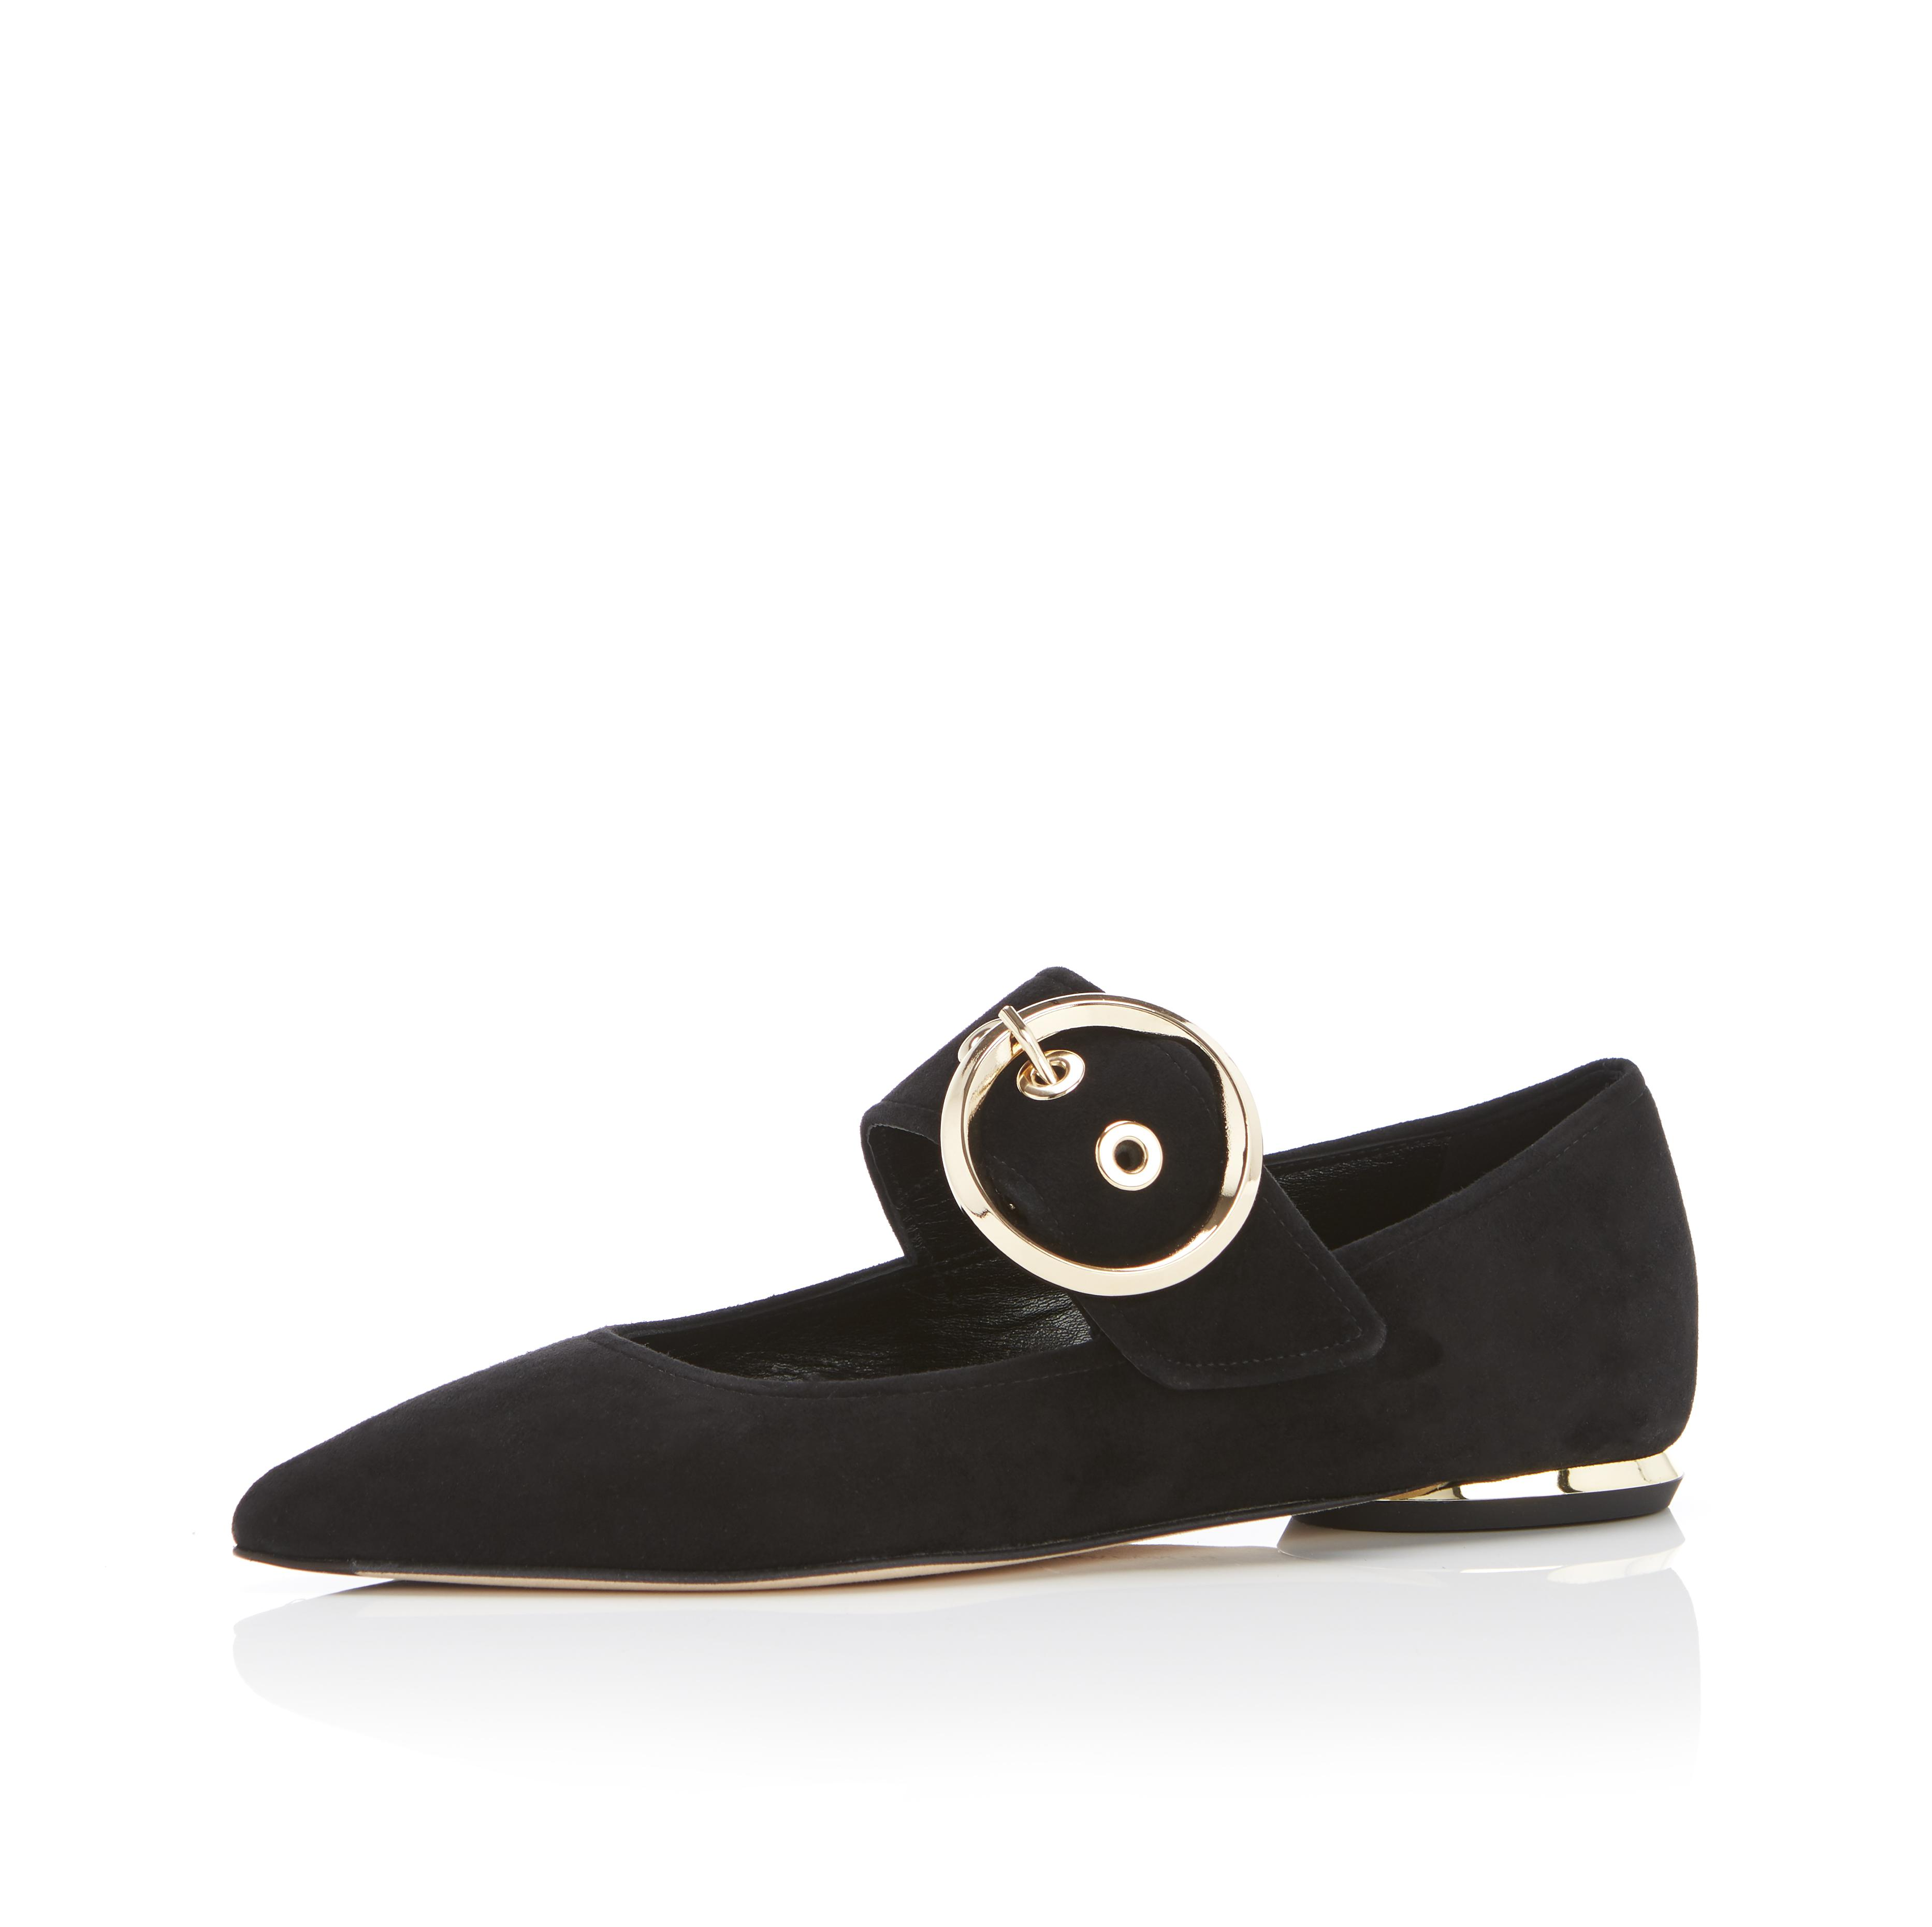 Nina   Suede Pointy Toe Mary Jane Flat With Buckle 1